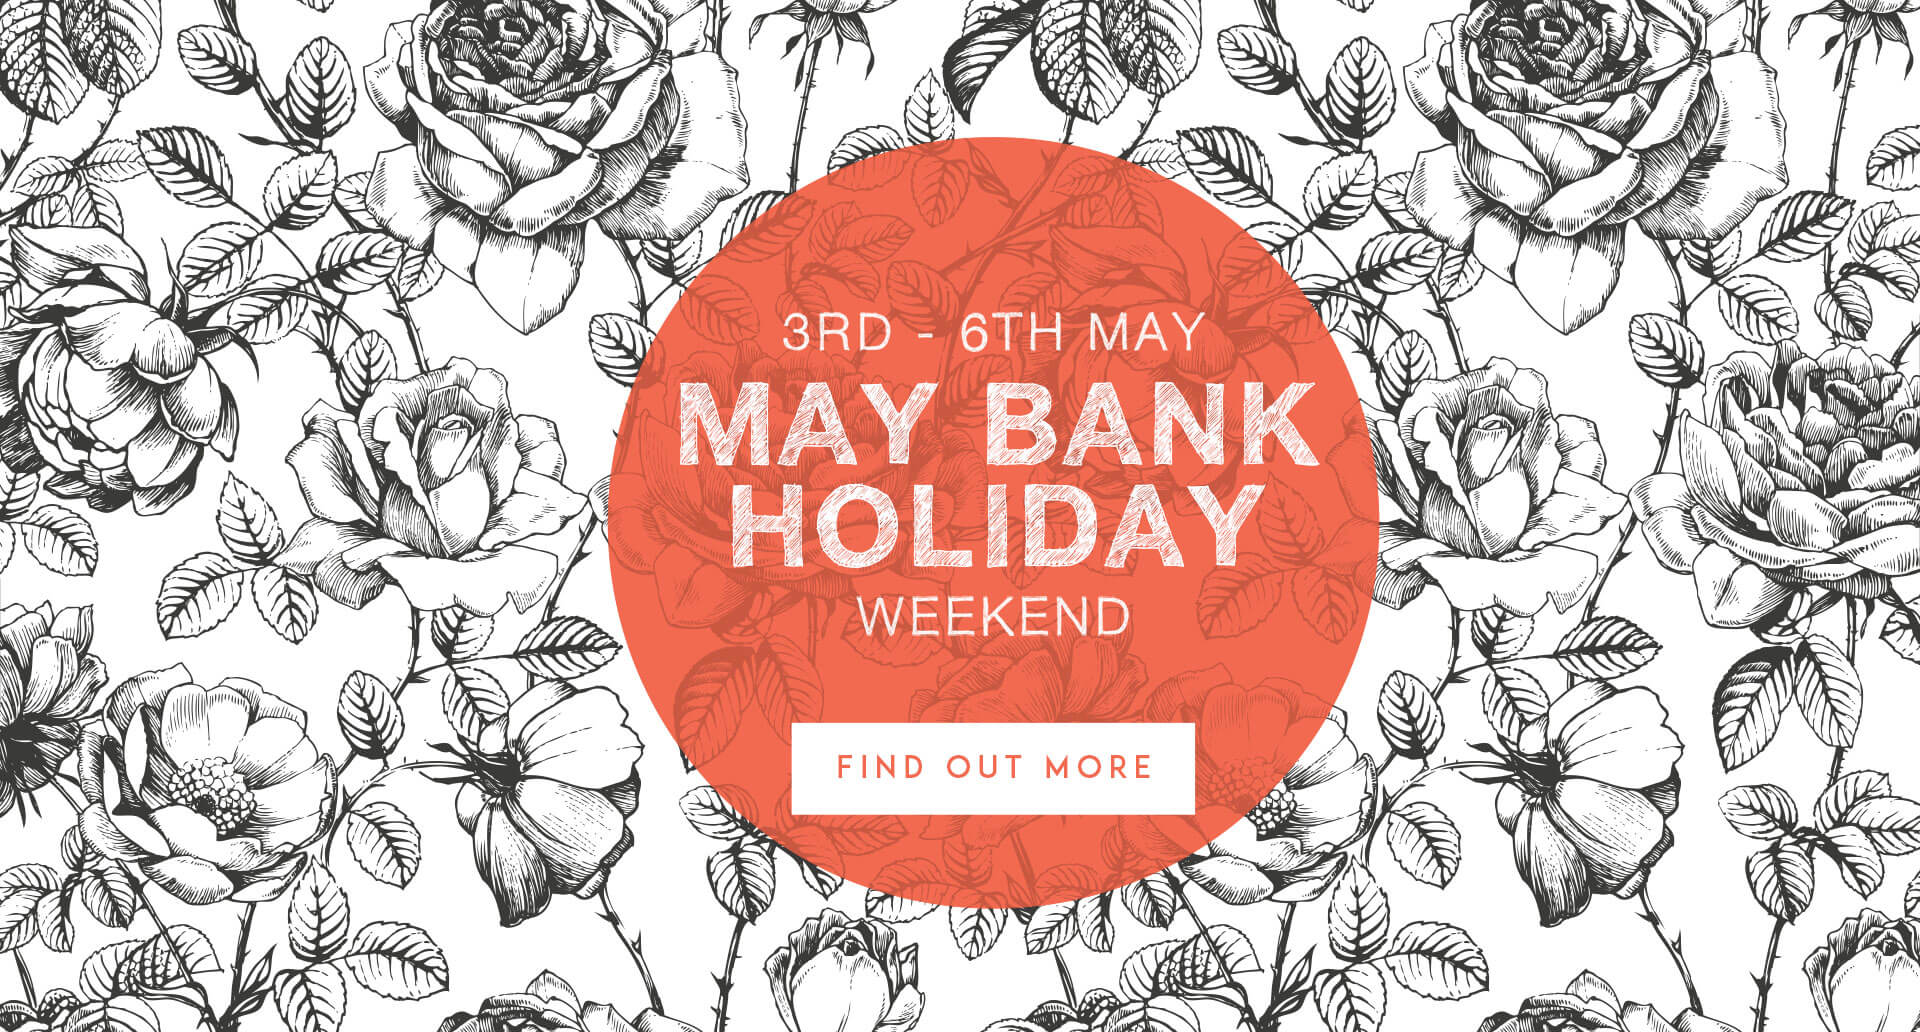 May Bank Holiday at The King's Head